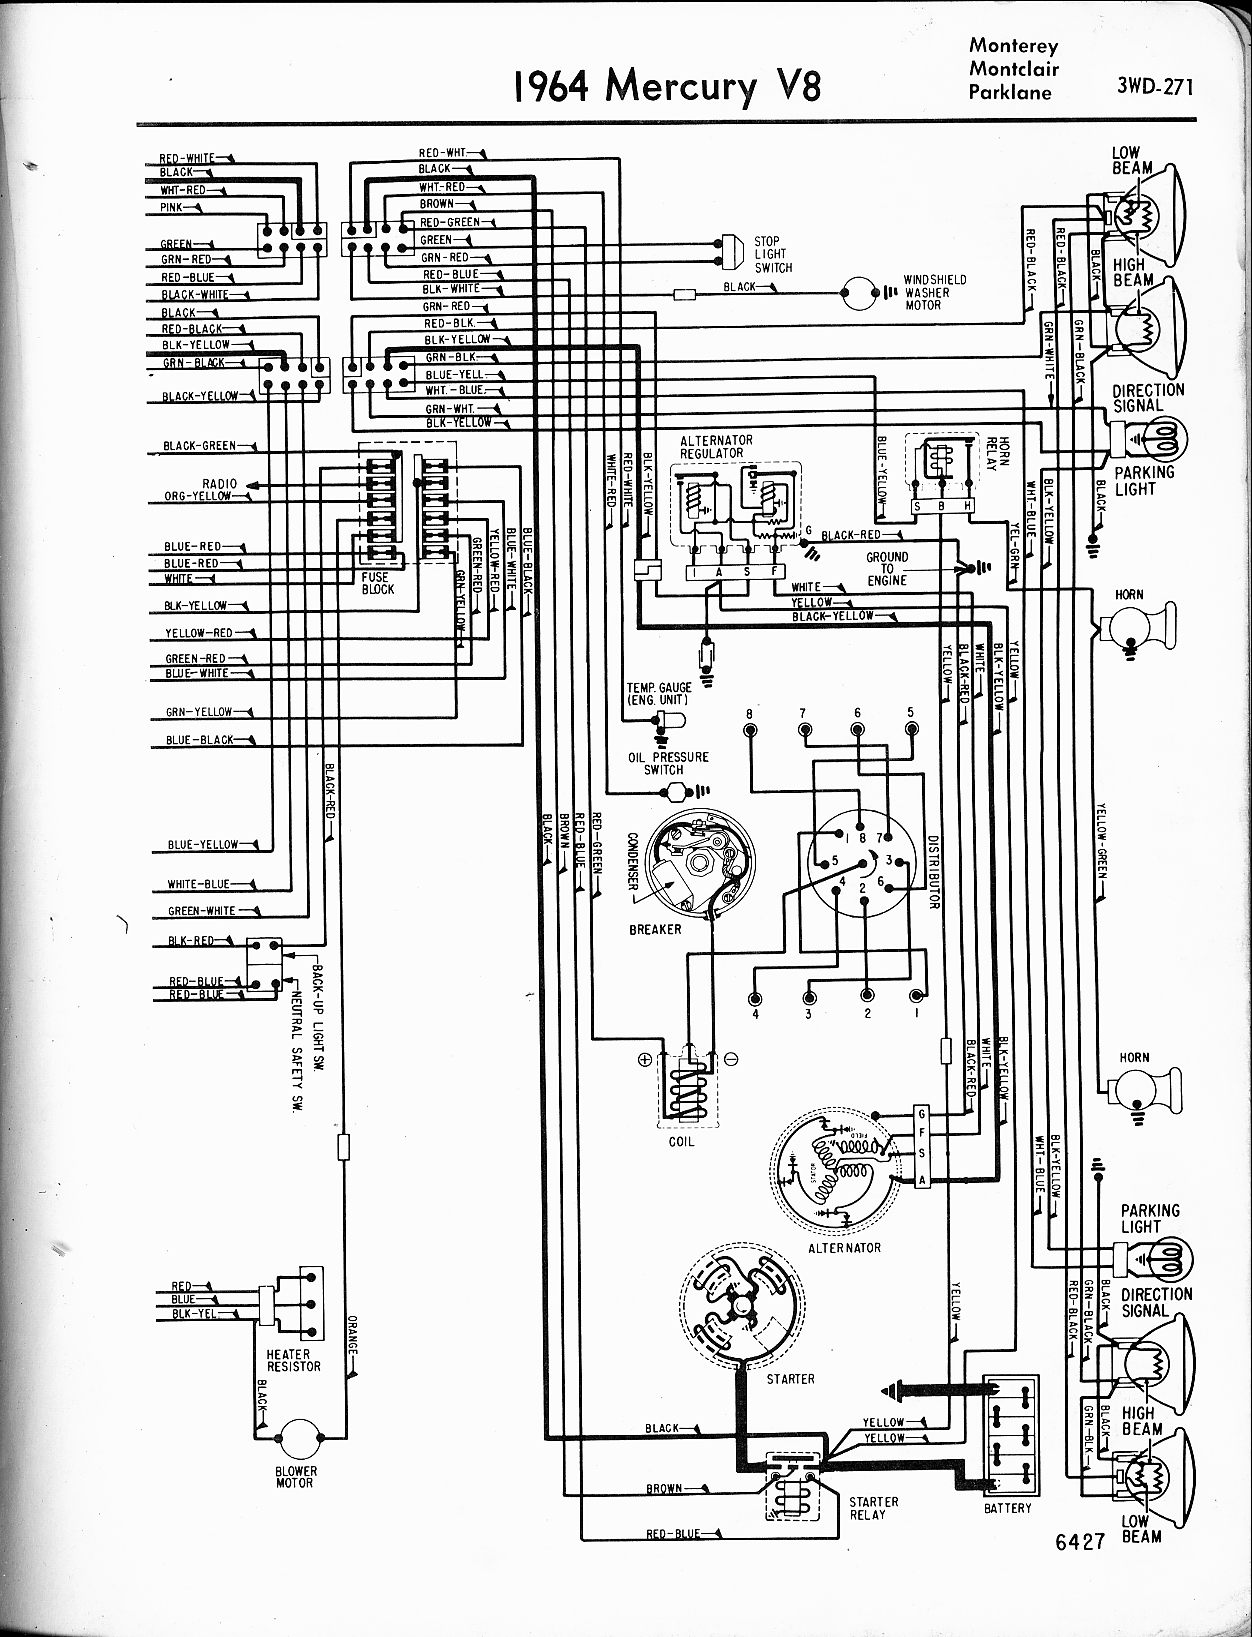 Mercury Wiring Diagrams The Old Car Manual Project In Diagram 1964 V8 Monterey Montclair Parklane Right Page